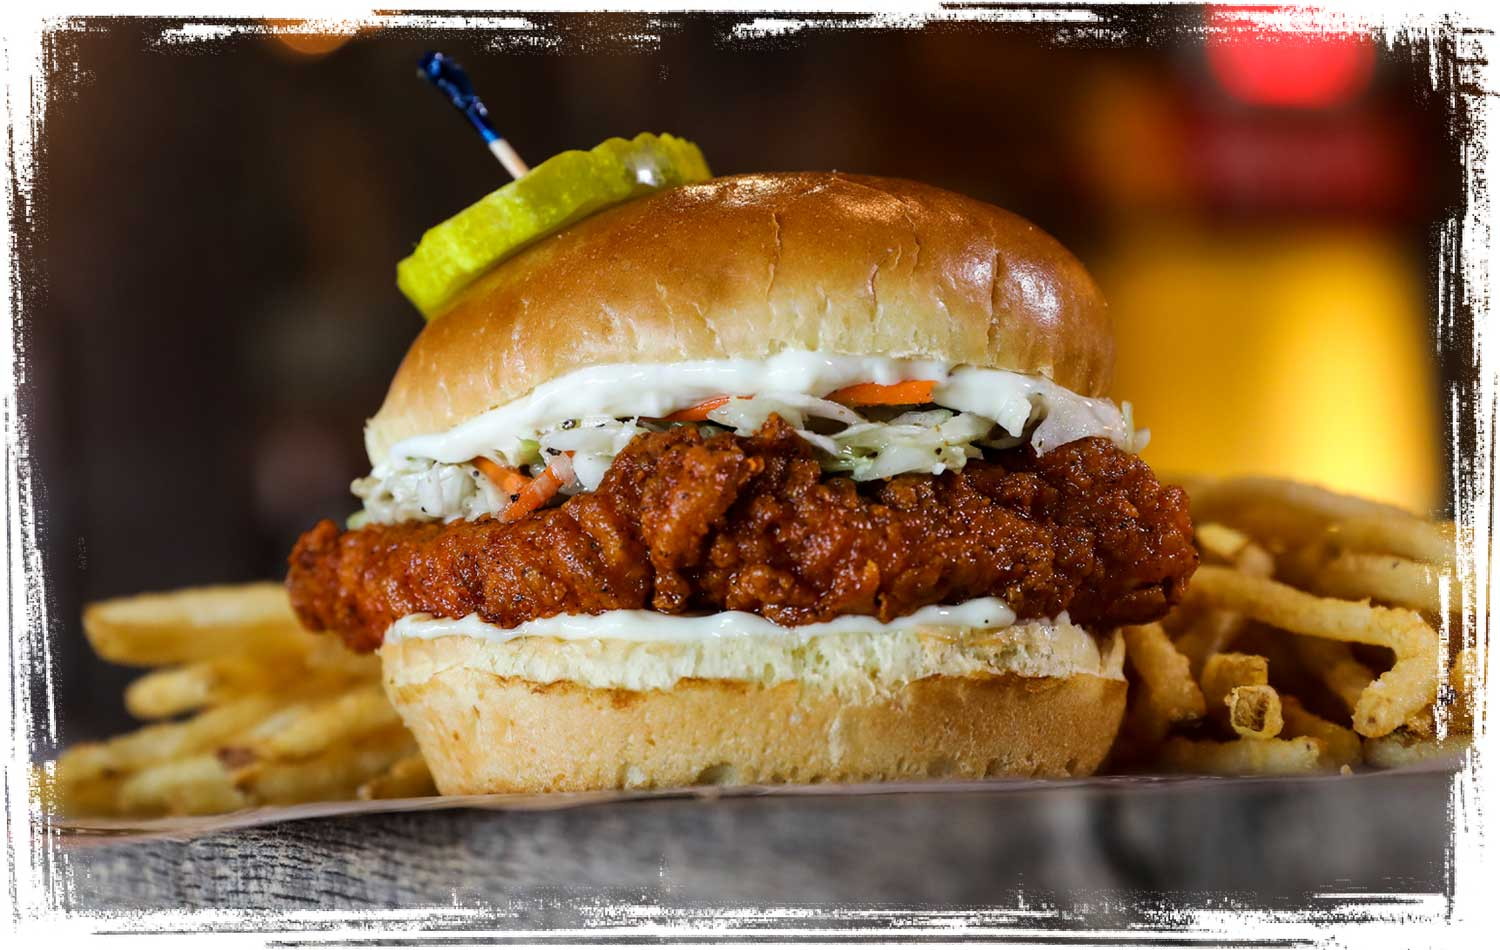 Joella's Make it Dixie Classic Chicken Sandwich